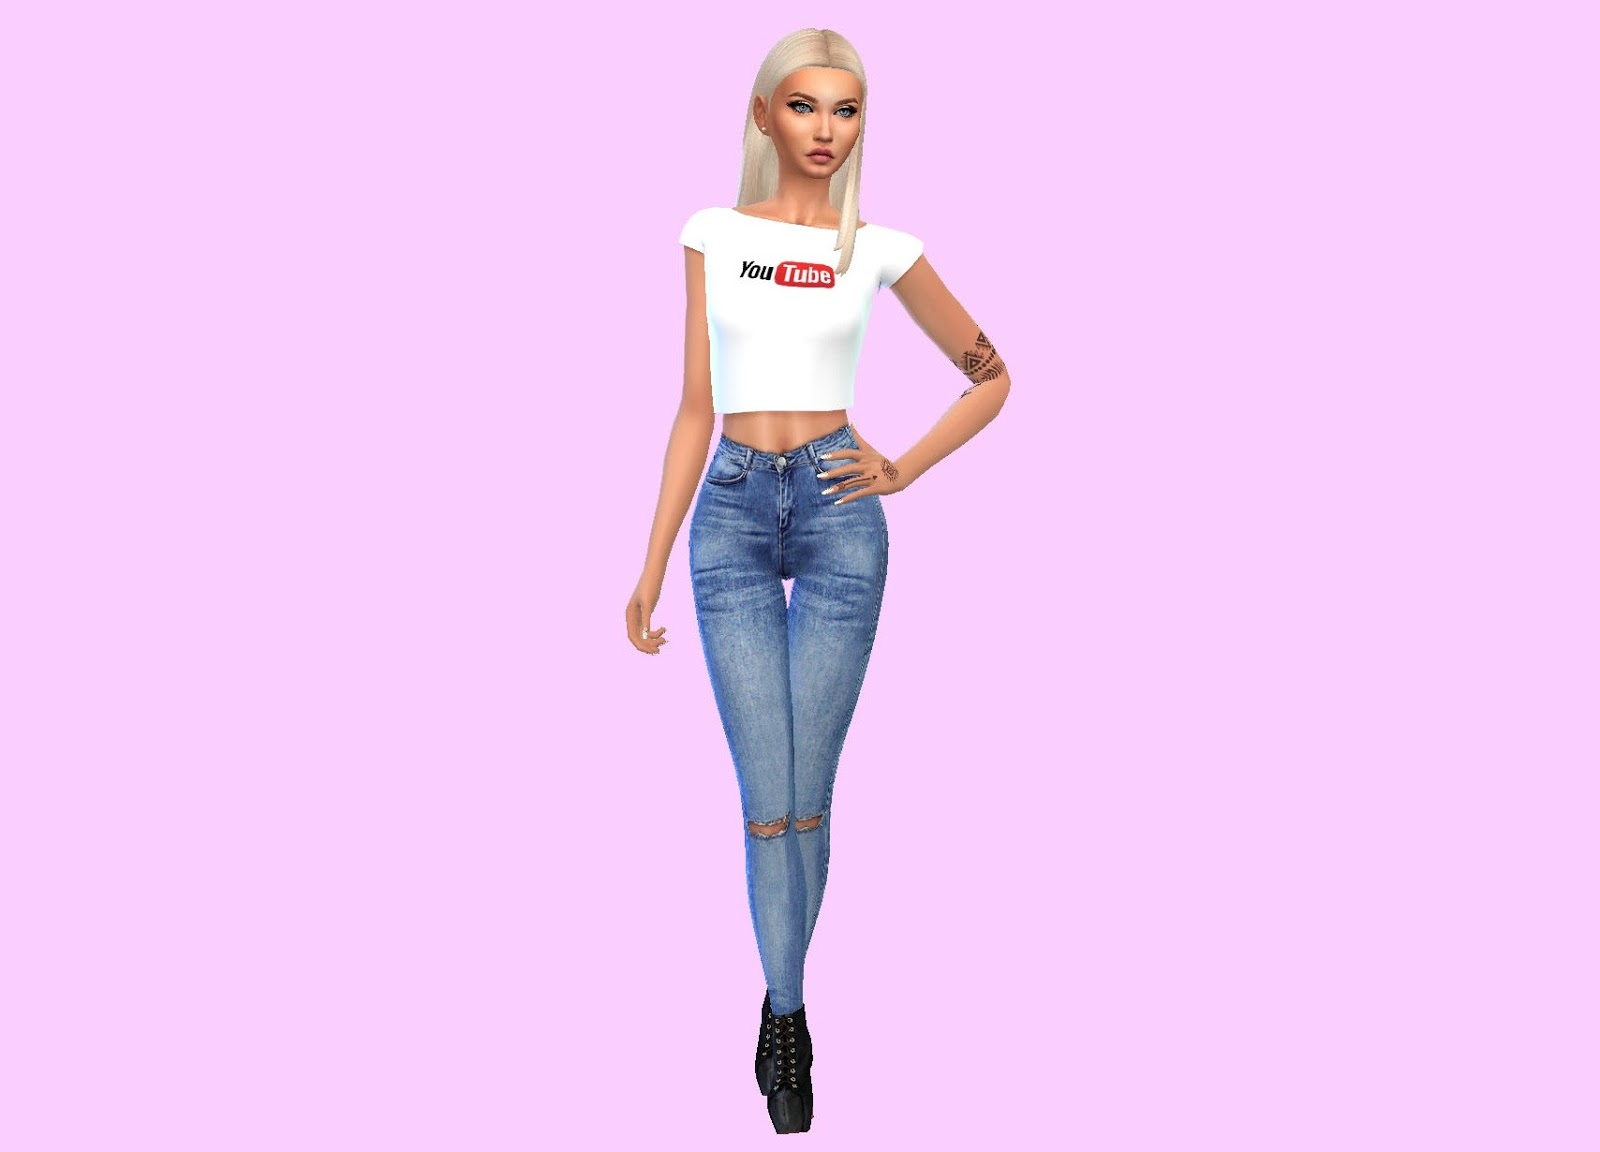 d544d85ed79 Plain white crop top with the Youtube logo. I will be uploading more Youtube-themed  tops soon so stay tuned :)